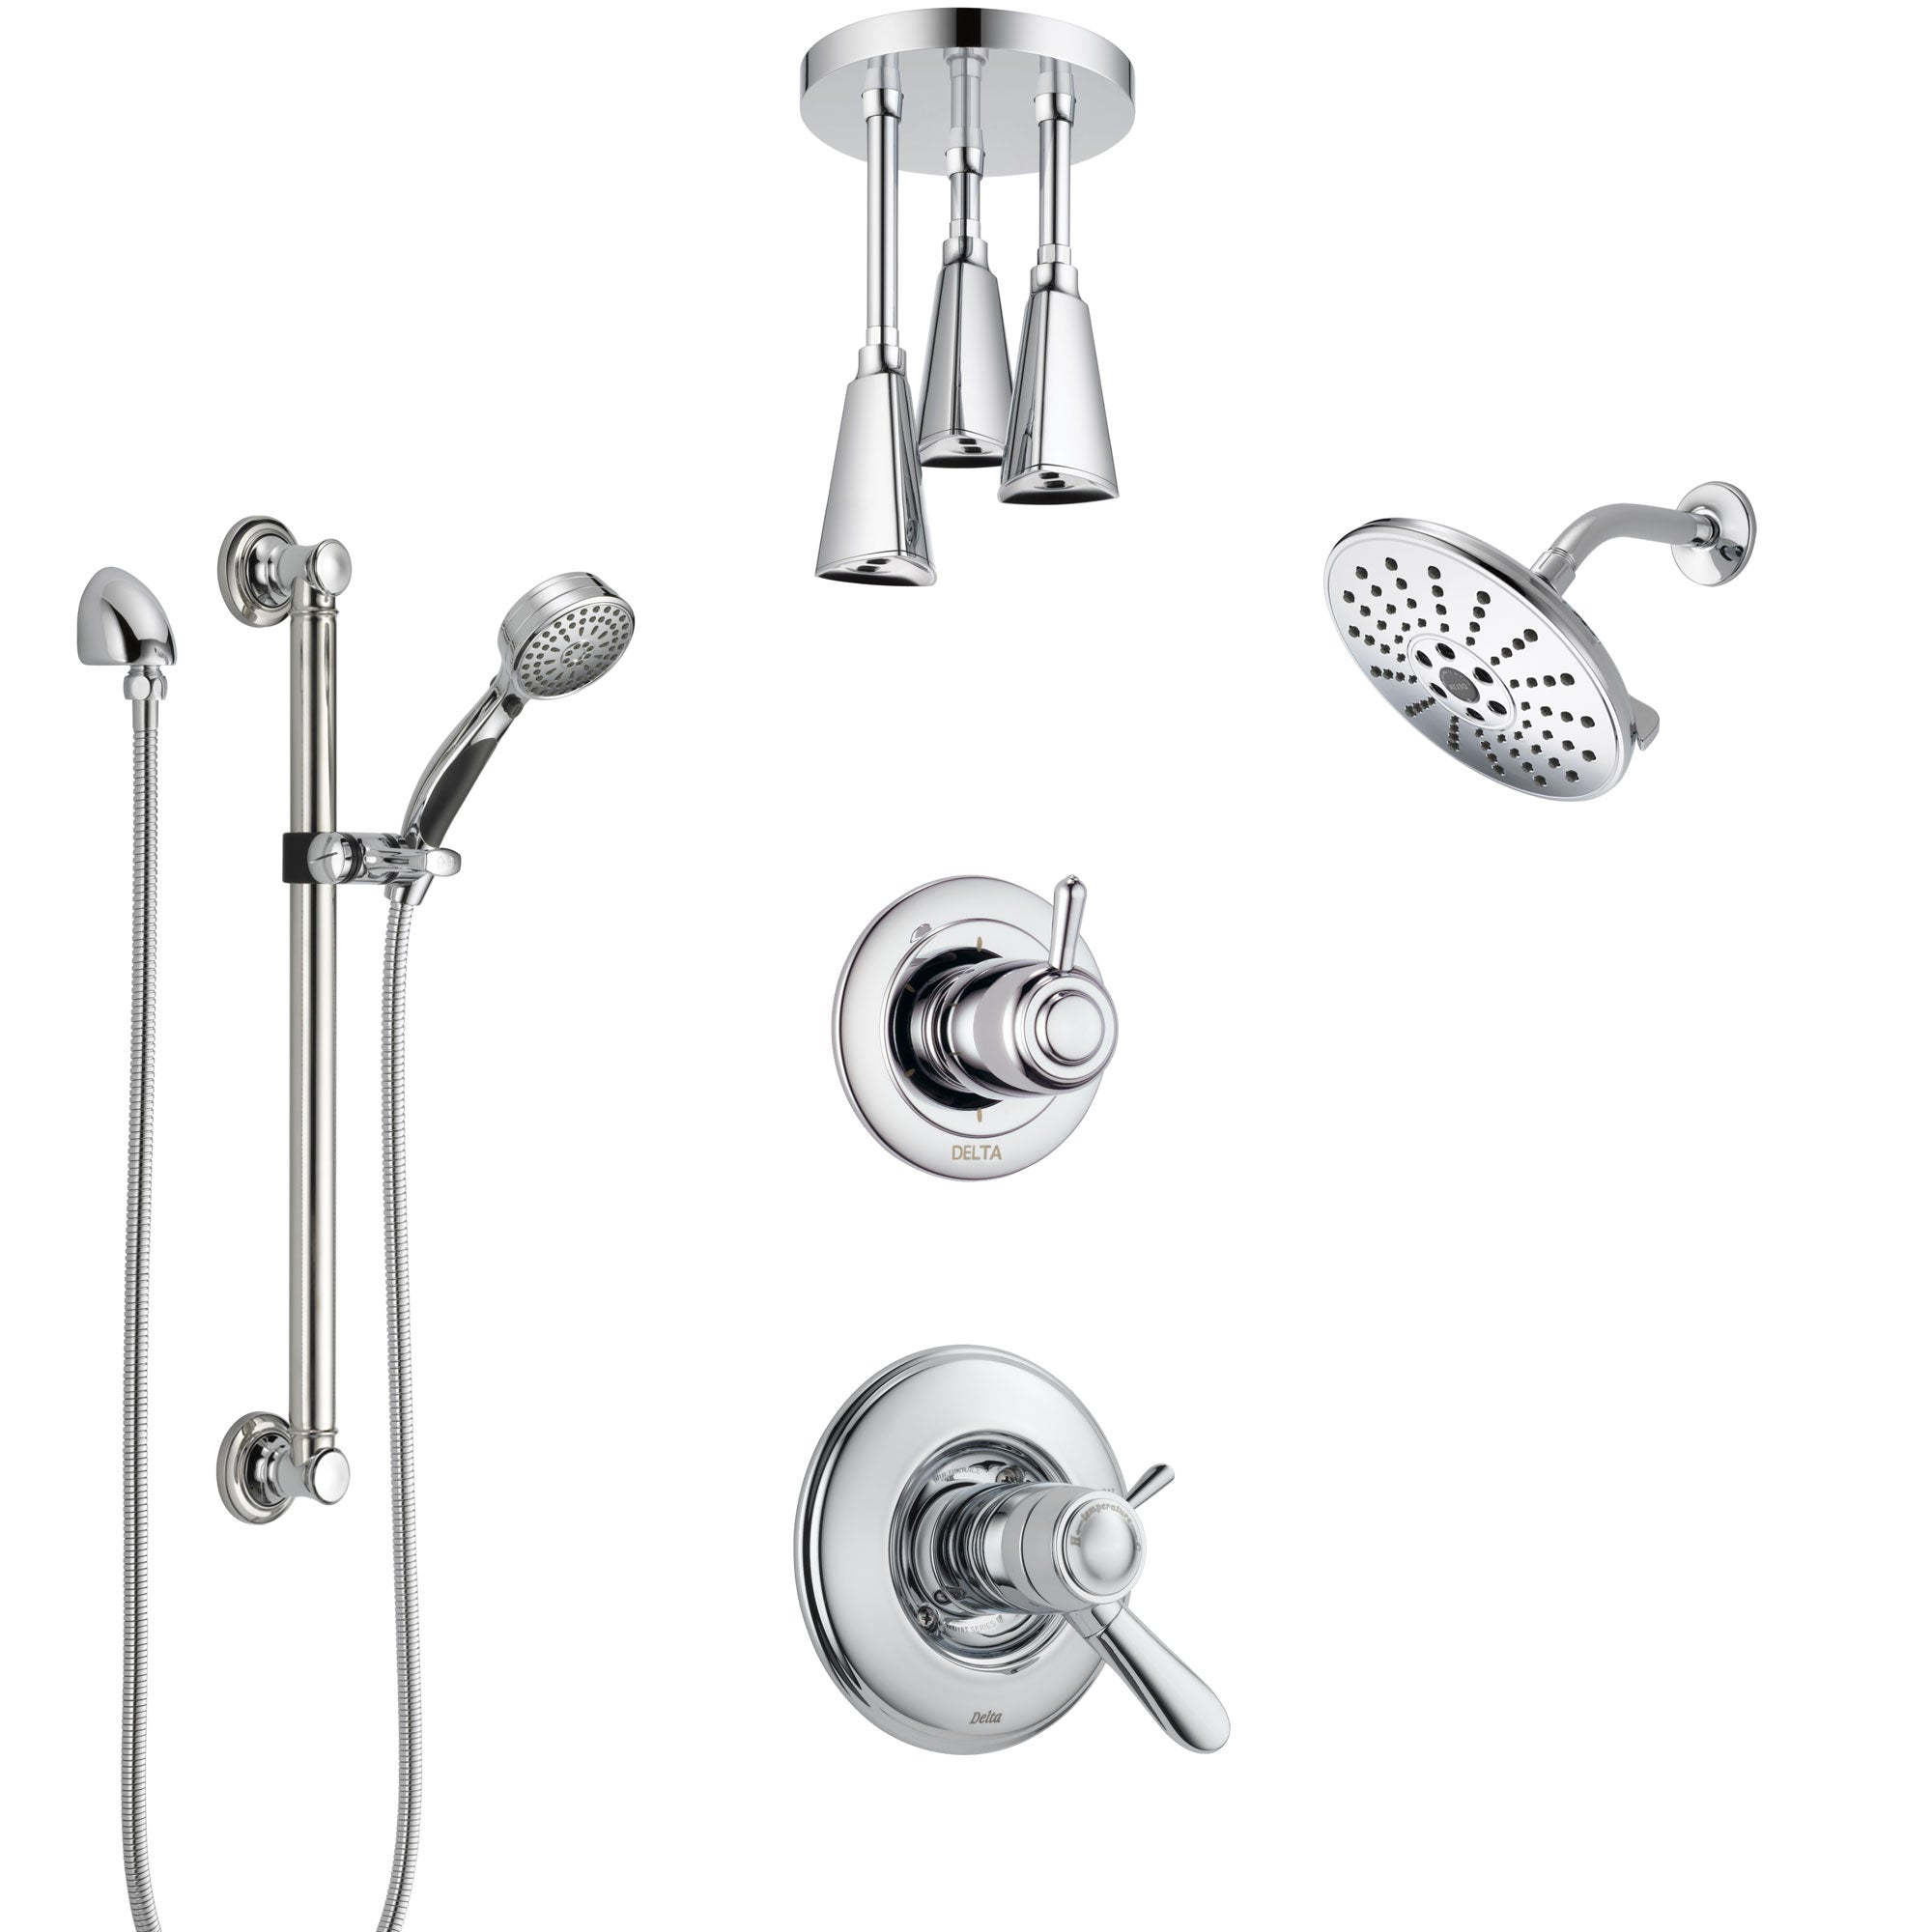 Delta Lahara Chrome Shower System with Dual Thermostatic Control, Diverter, Showerhead, Ceiling Mount Showerhead, and Grab Bar Hand Shower SS17T3821